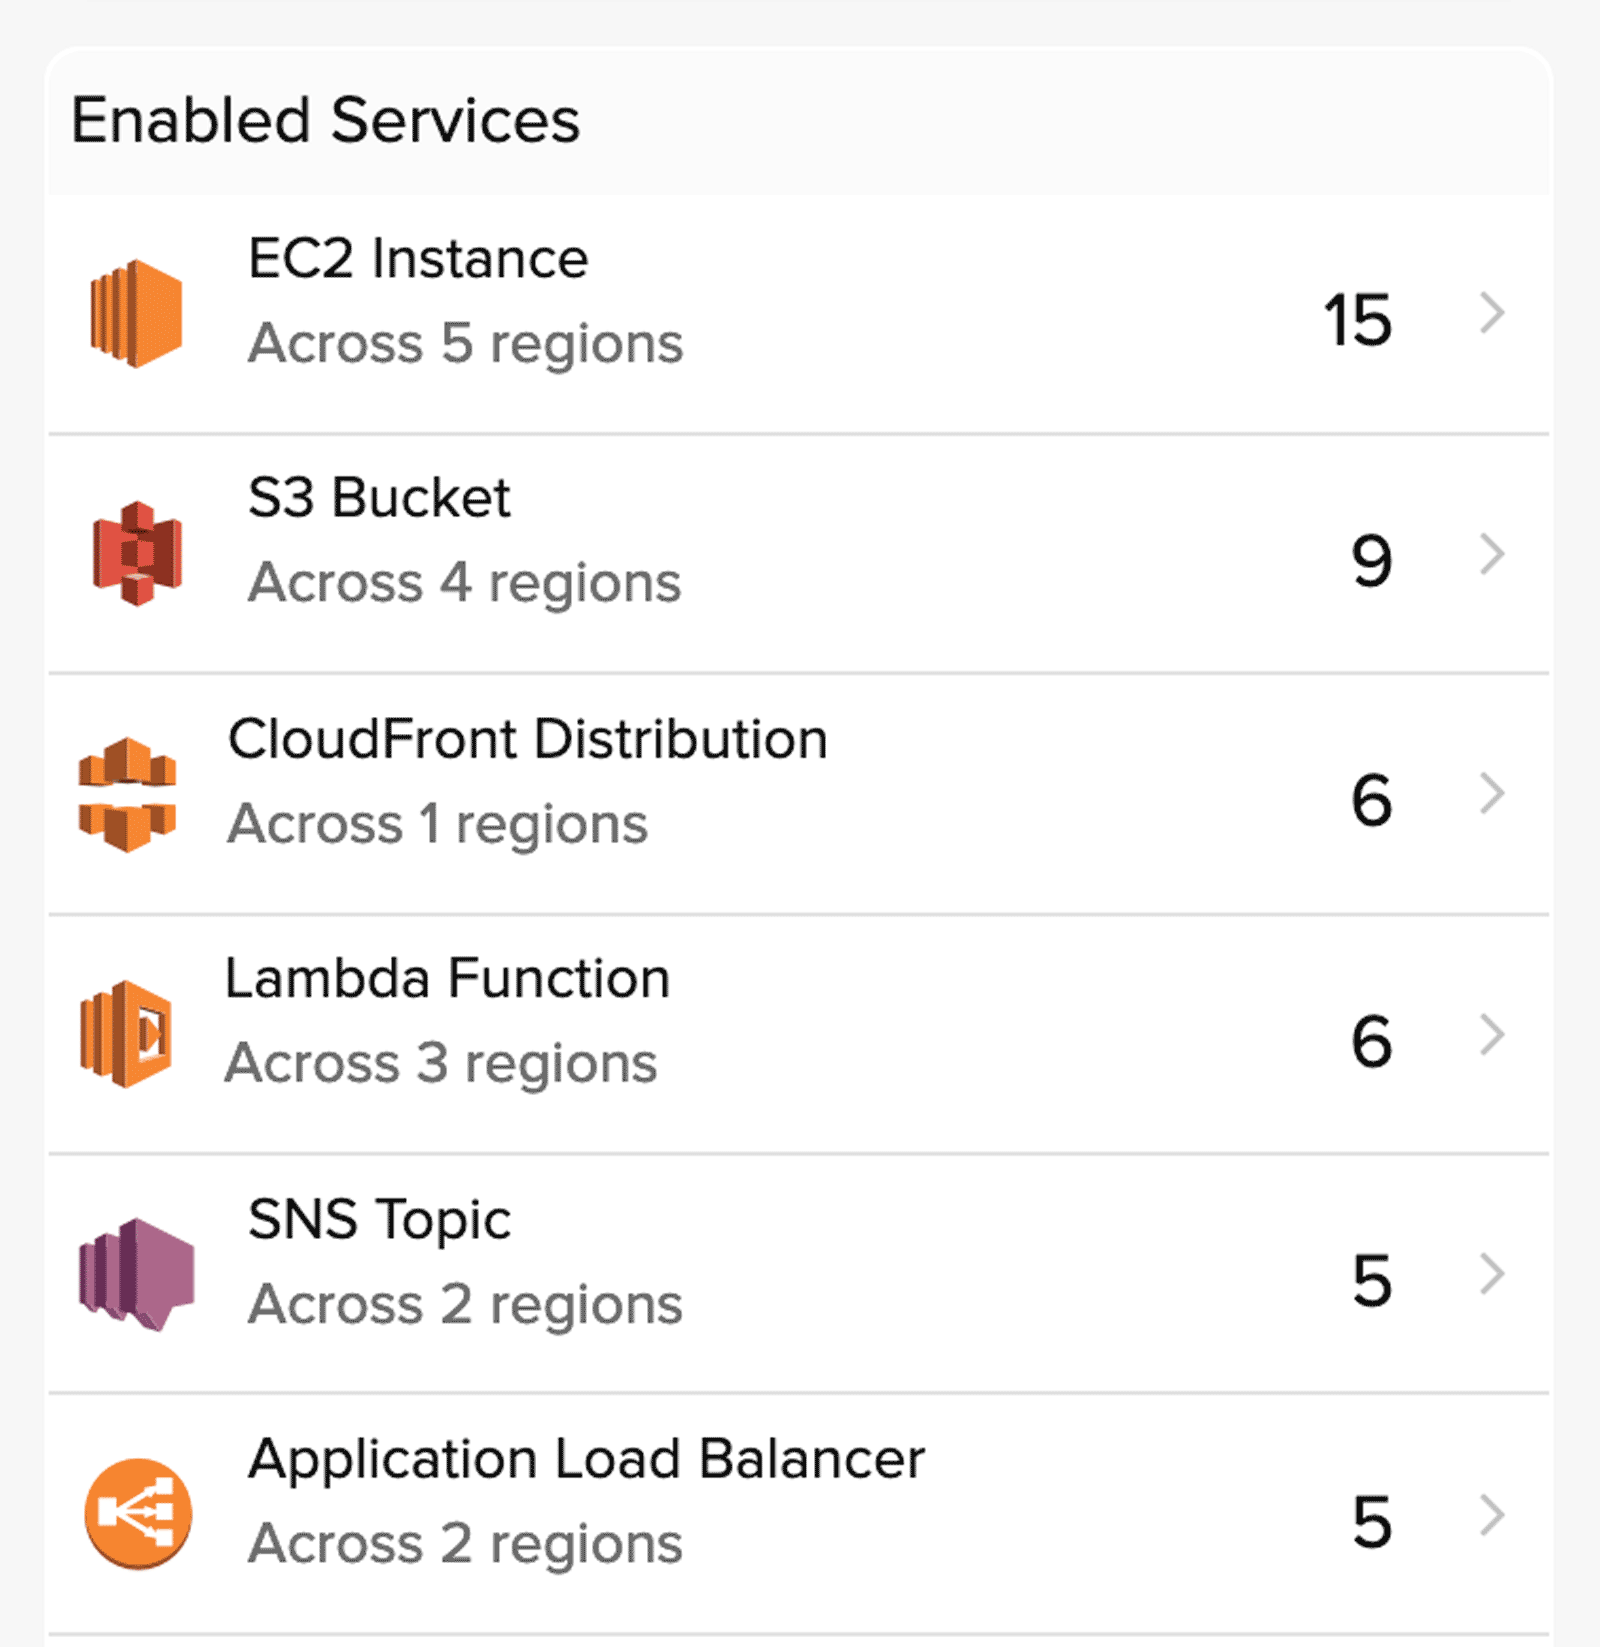 A view showing AWS services along with aggregate resource count